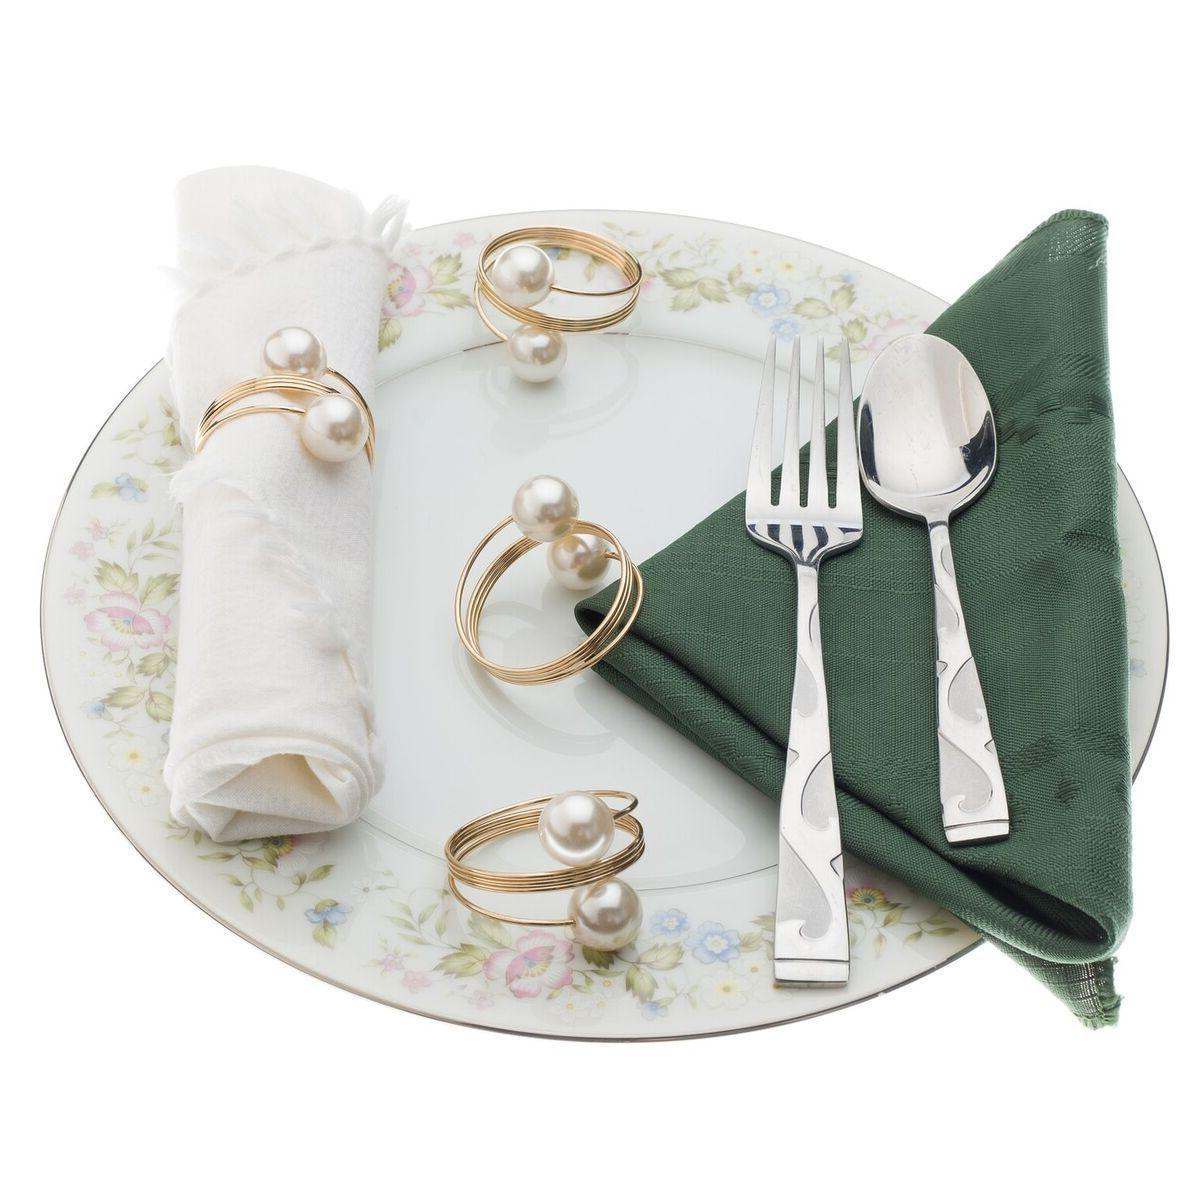 12X Exquisite Pearl Napkin Ring Handmade Serviette Buckle Ho